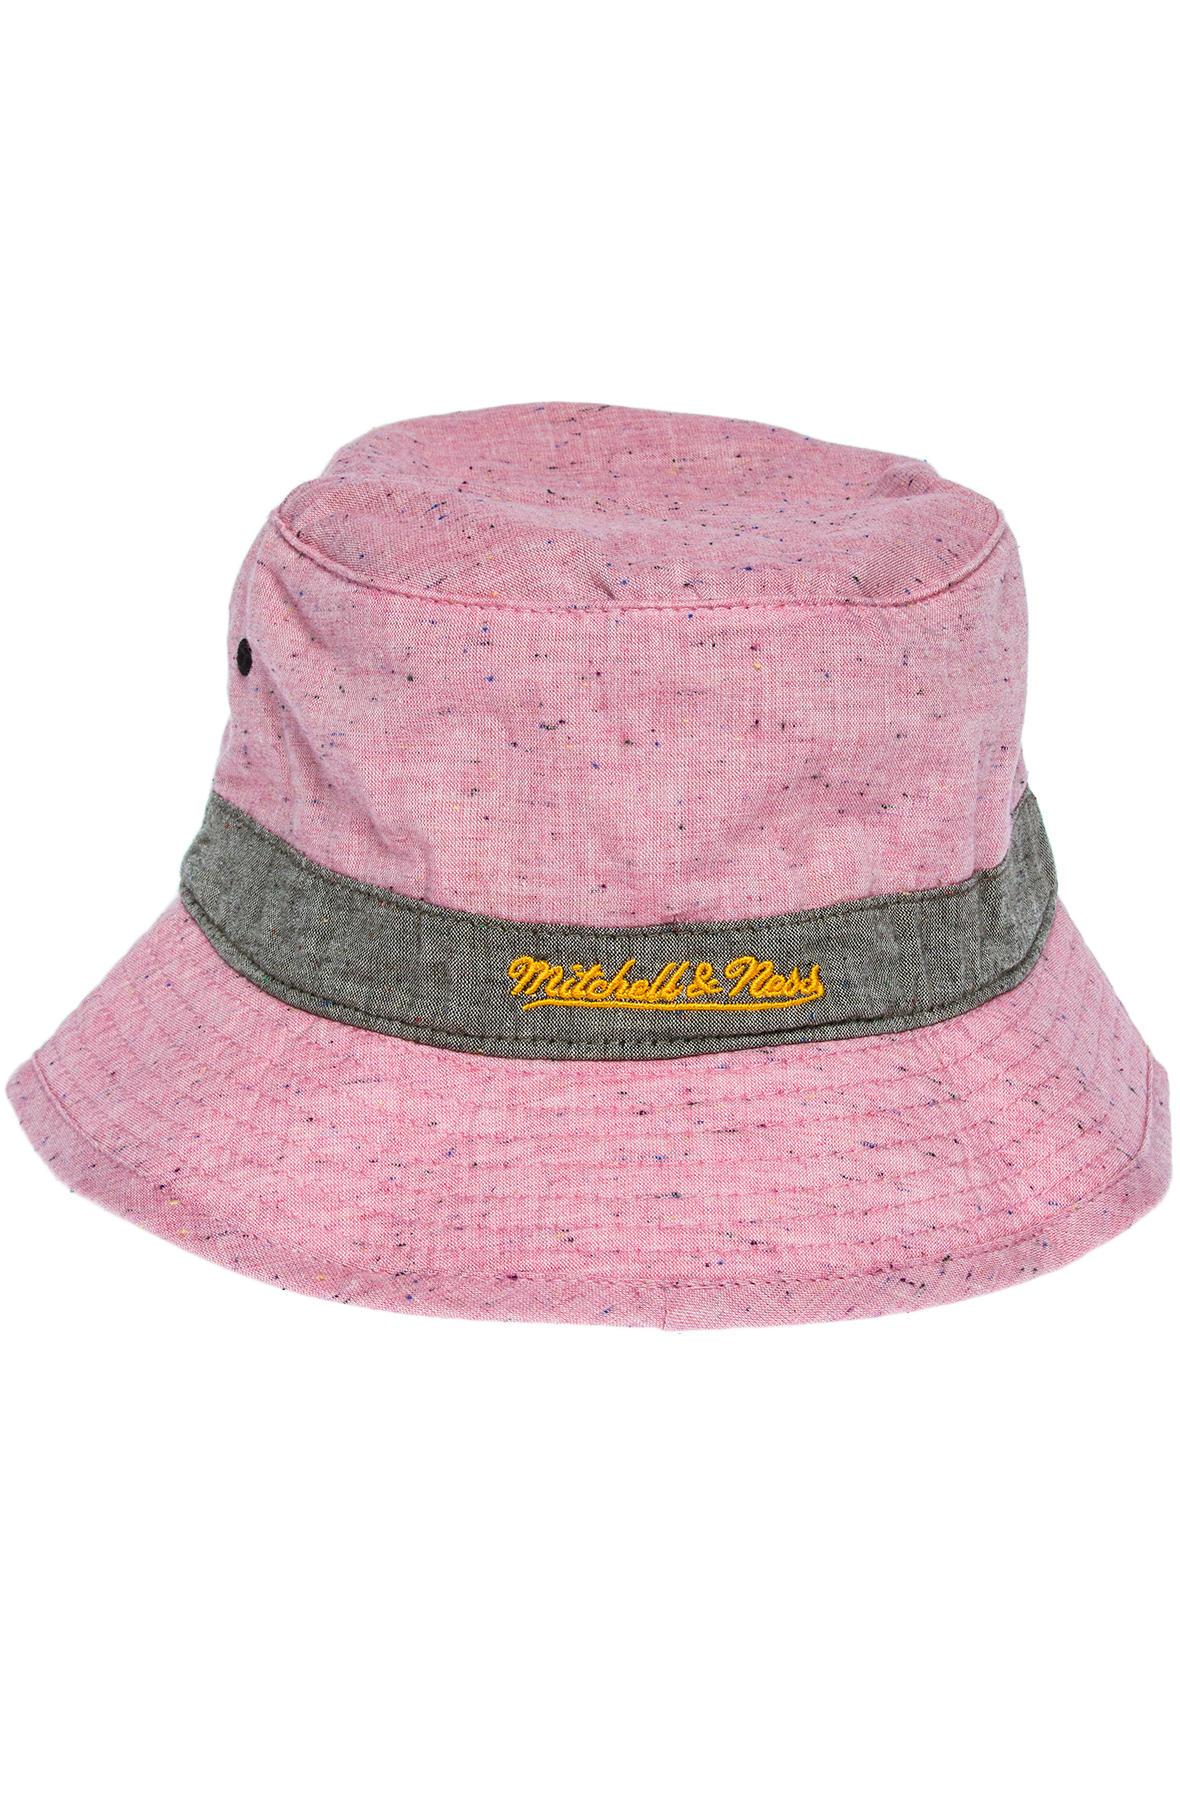 Lyst - Mitchell   Ness The Miami Heat Lawn Bucket Hat in Pink for Men 7f7386f0da70